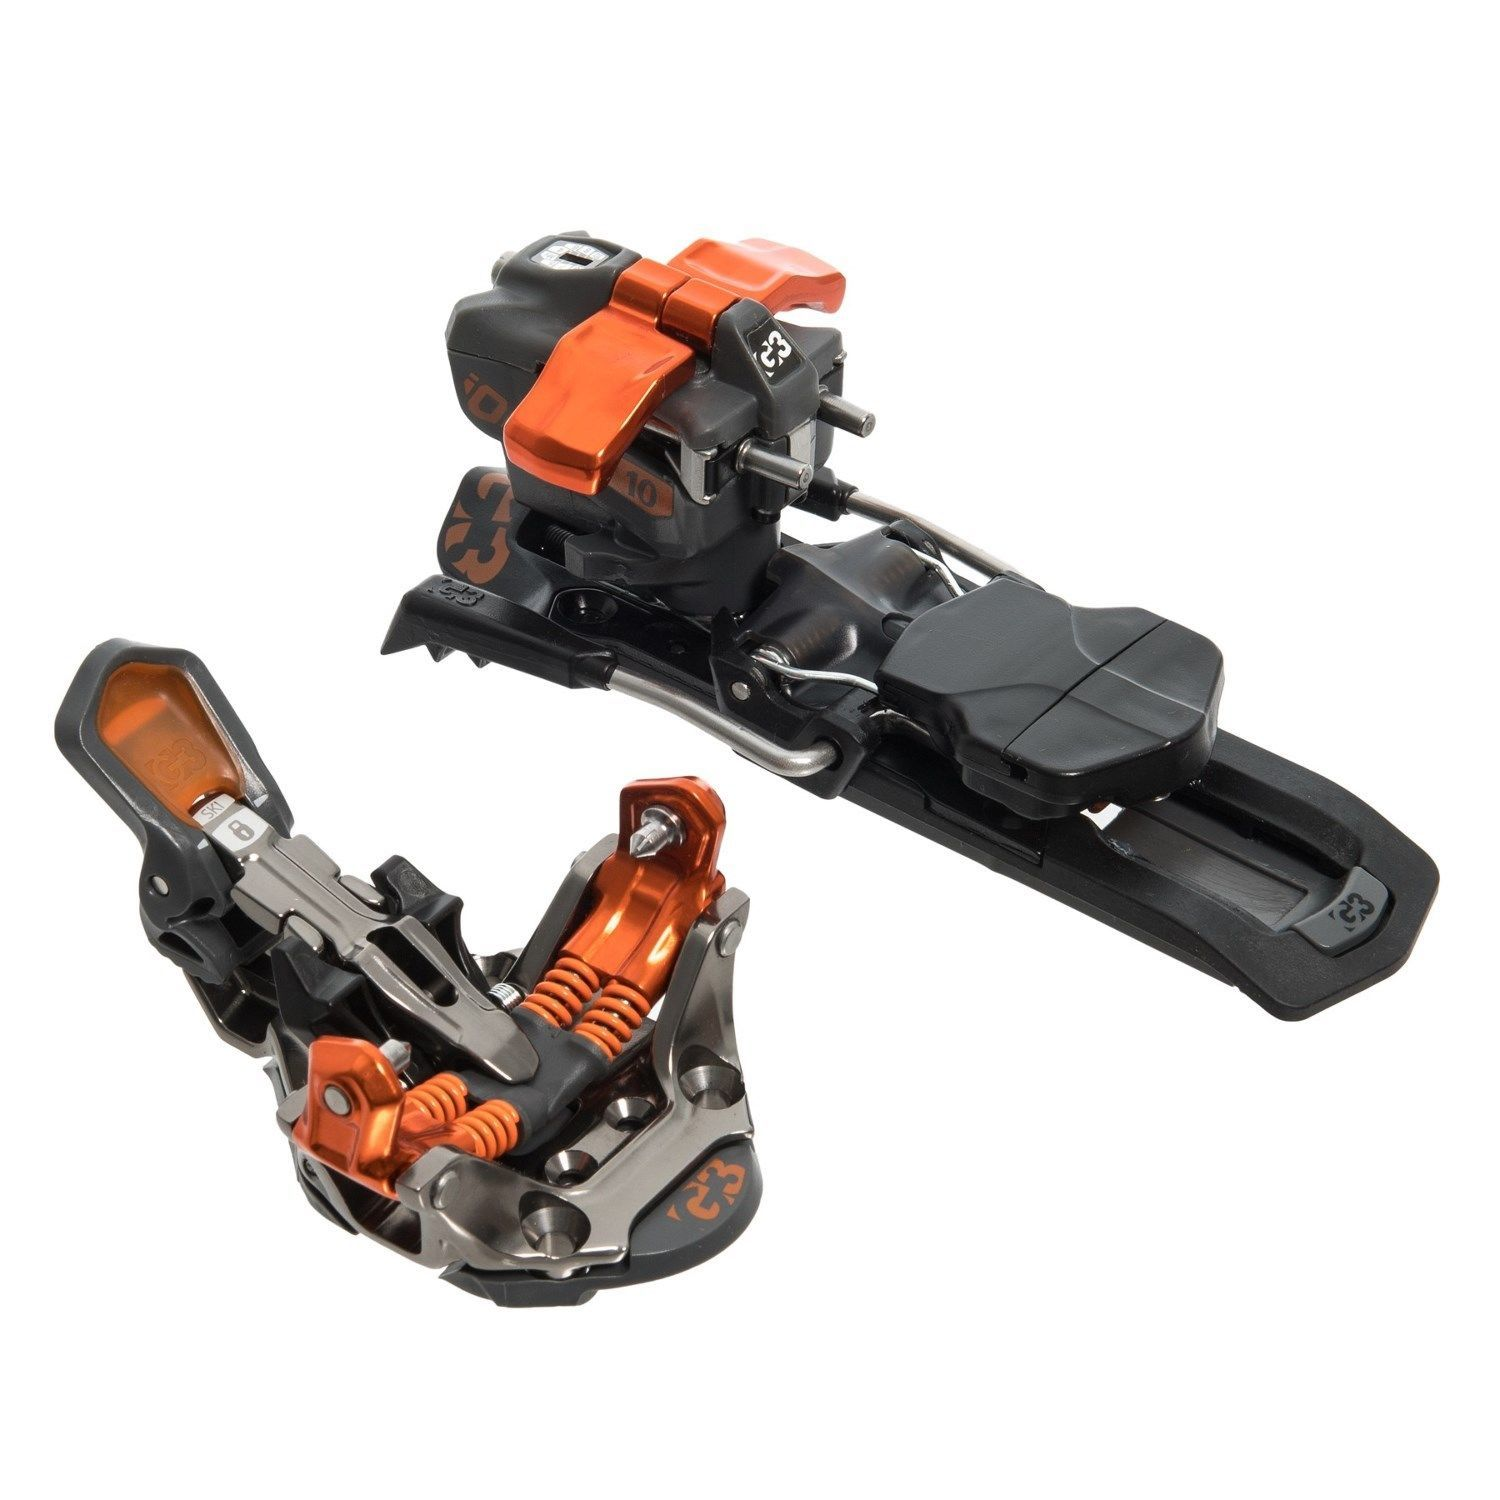 eb34cee8fe Downhill Skiing 16059  G3 Ion 10 Tech Touring Backcountry Bindings Dynafit  - 85Mm Brake Demo -  BUY IT NOW ONLY   299.99 on  eBay  downhill  skiing   touring ...